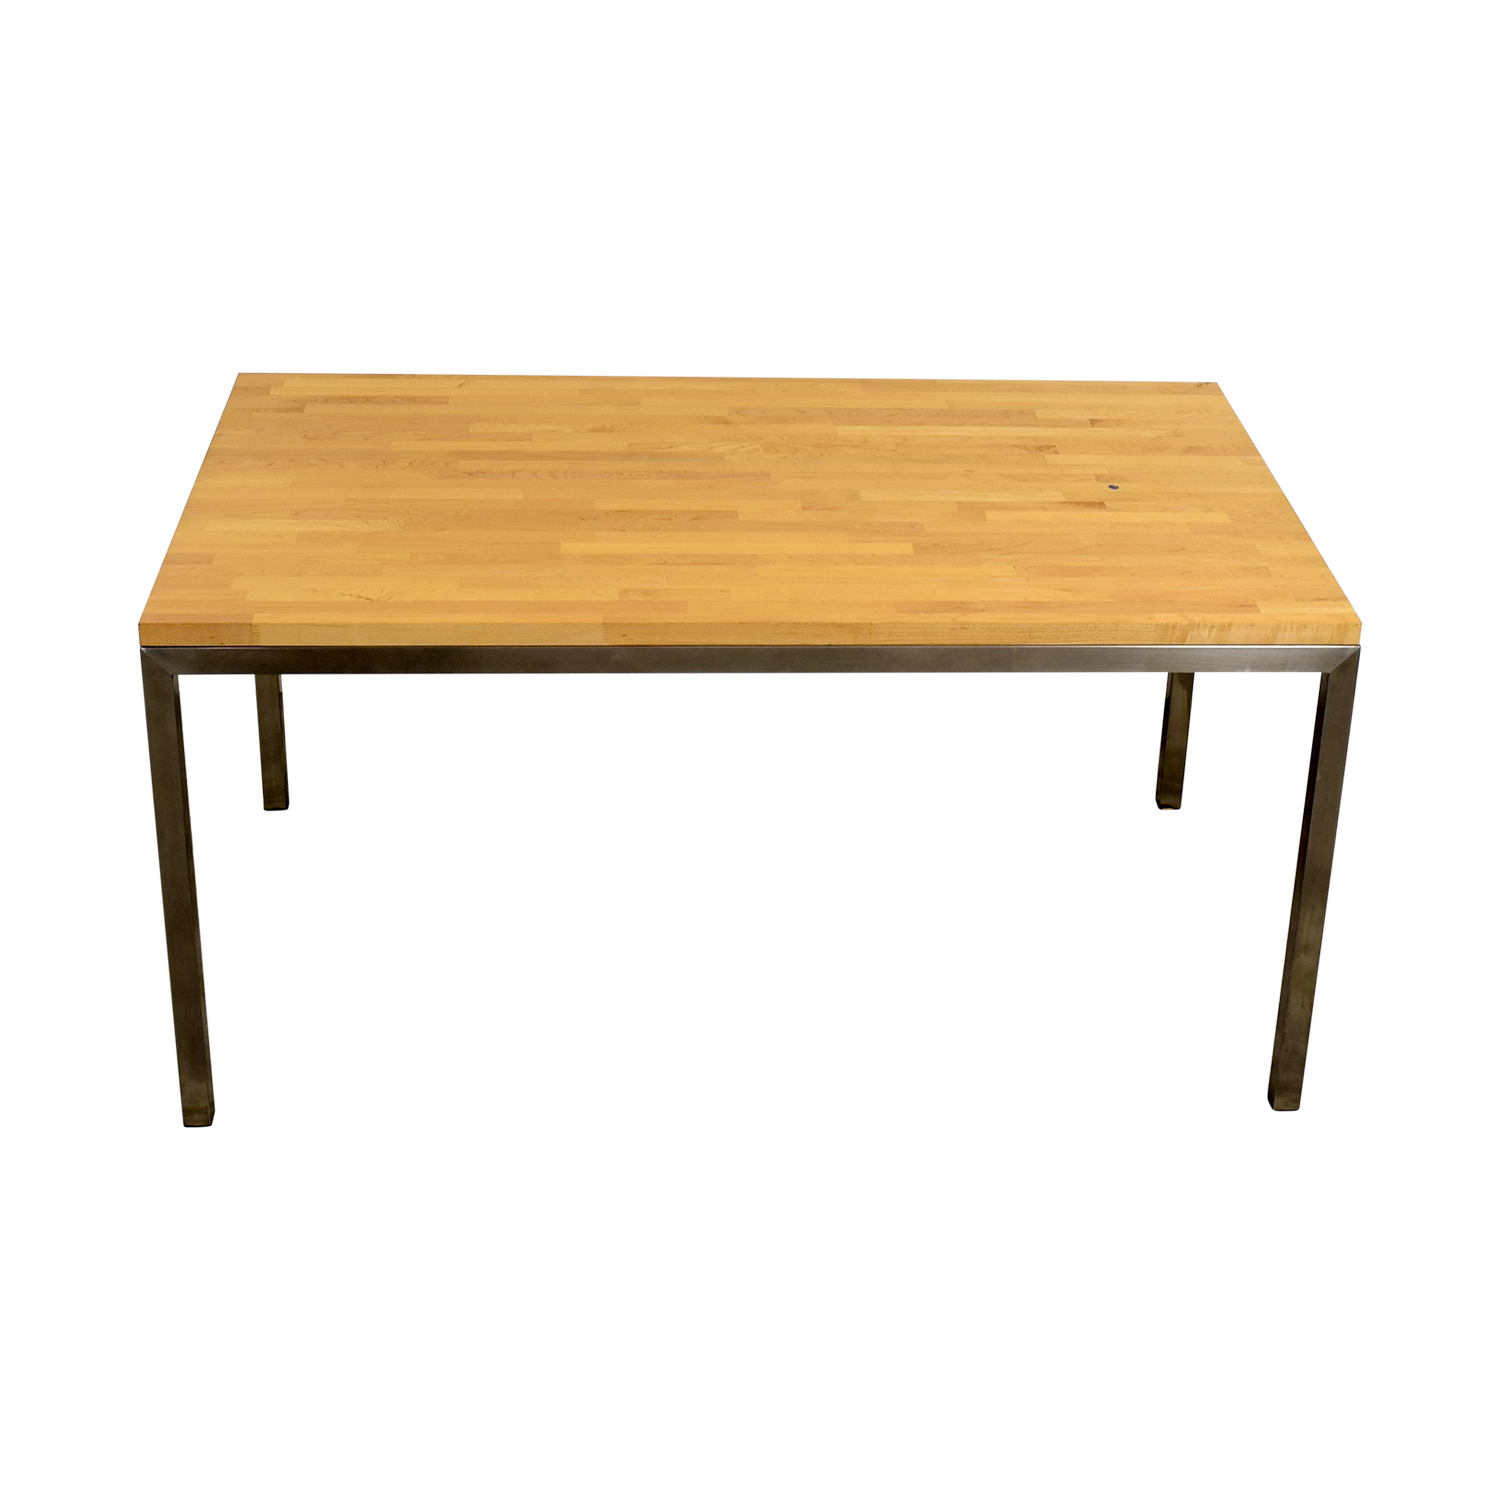 buy Room & Board Room & Board Portica Table online